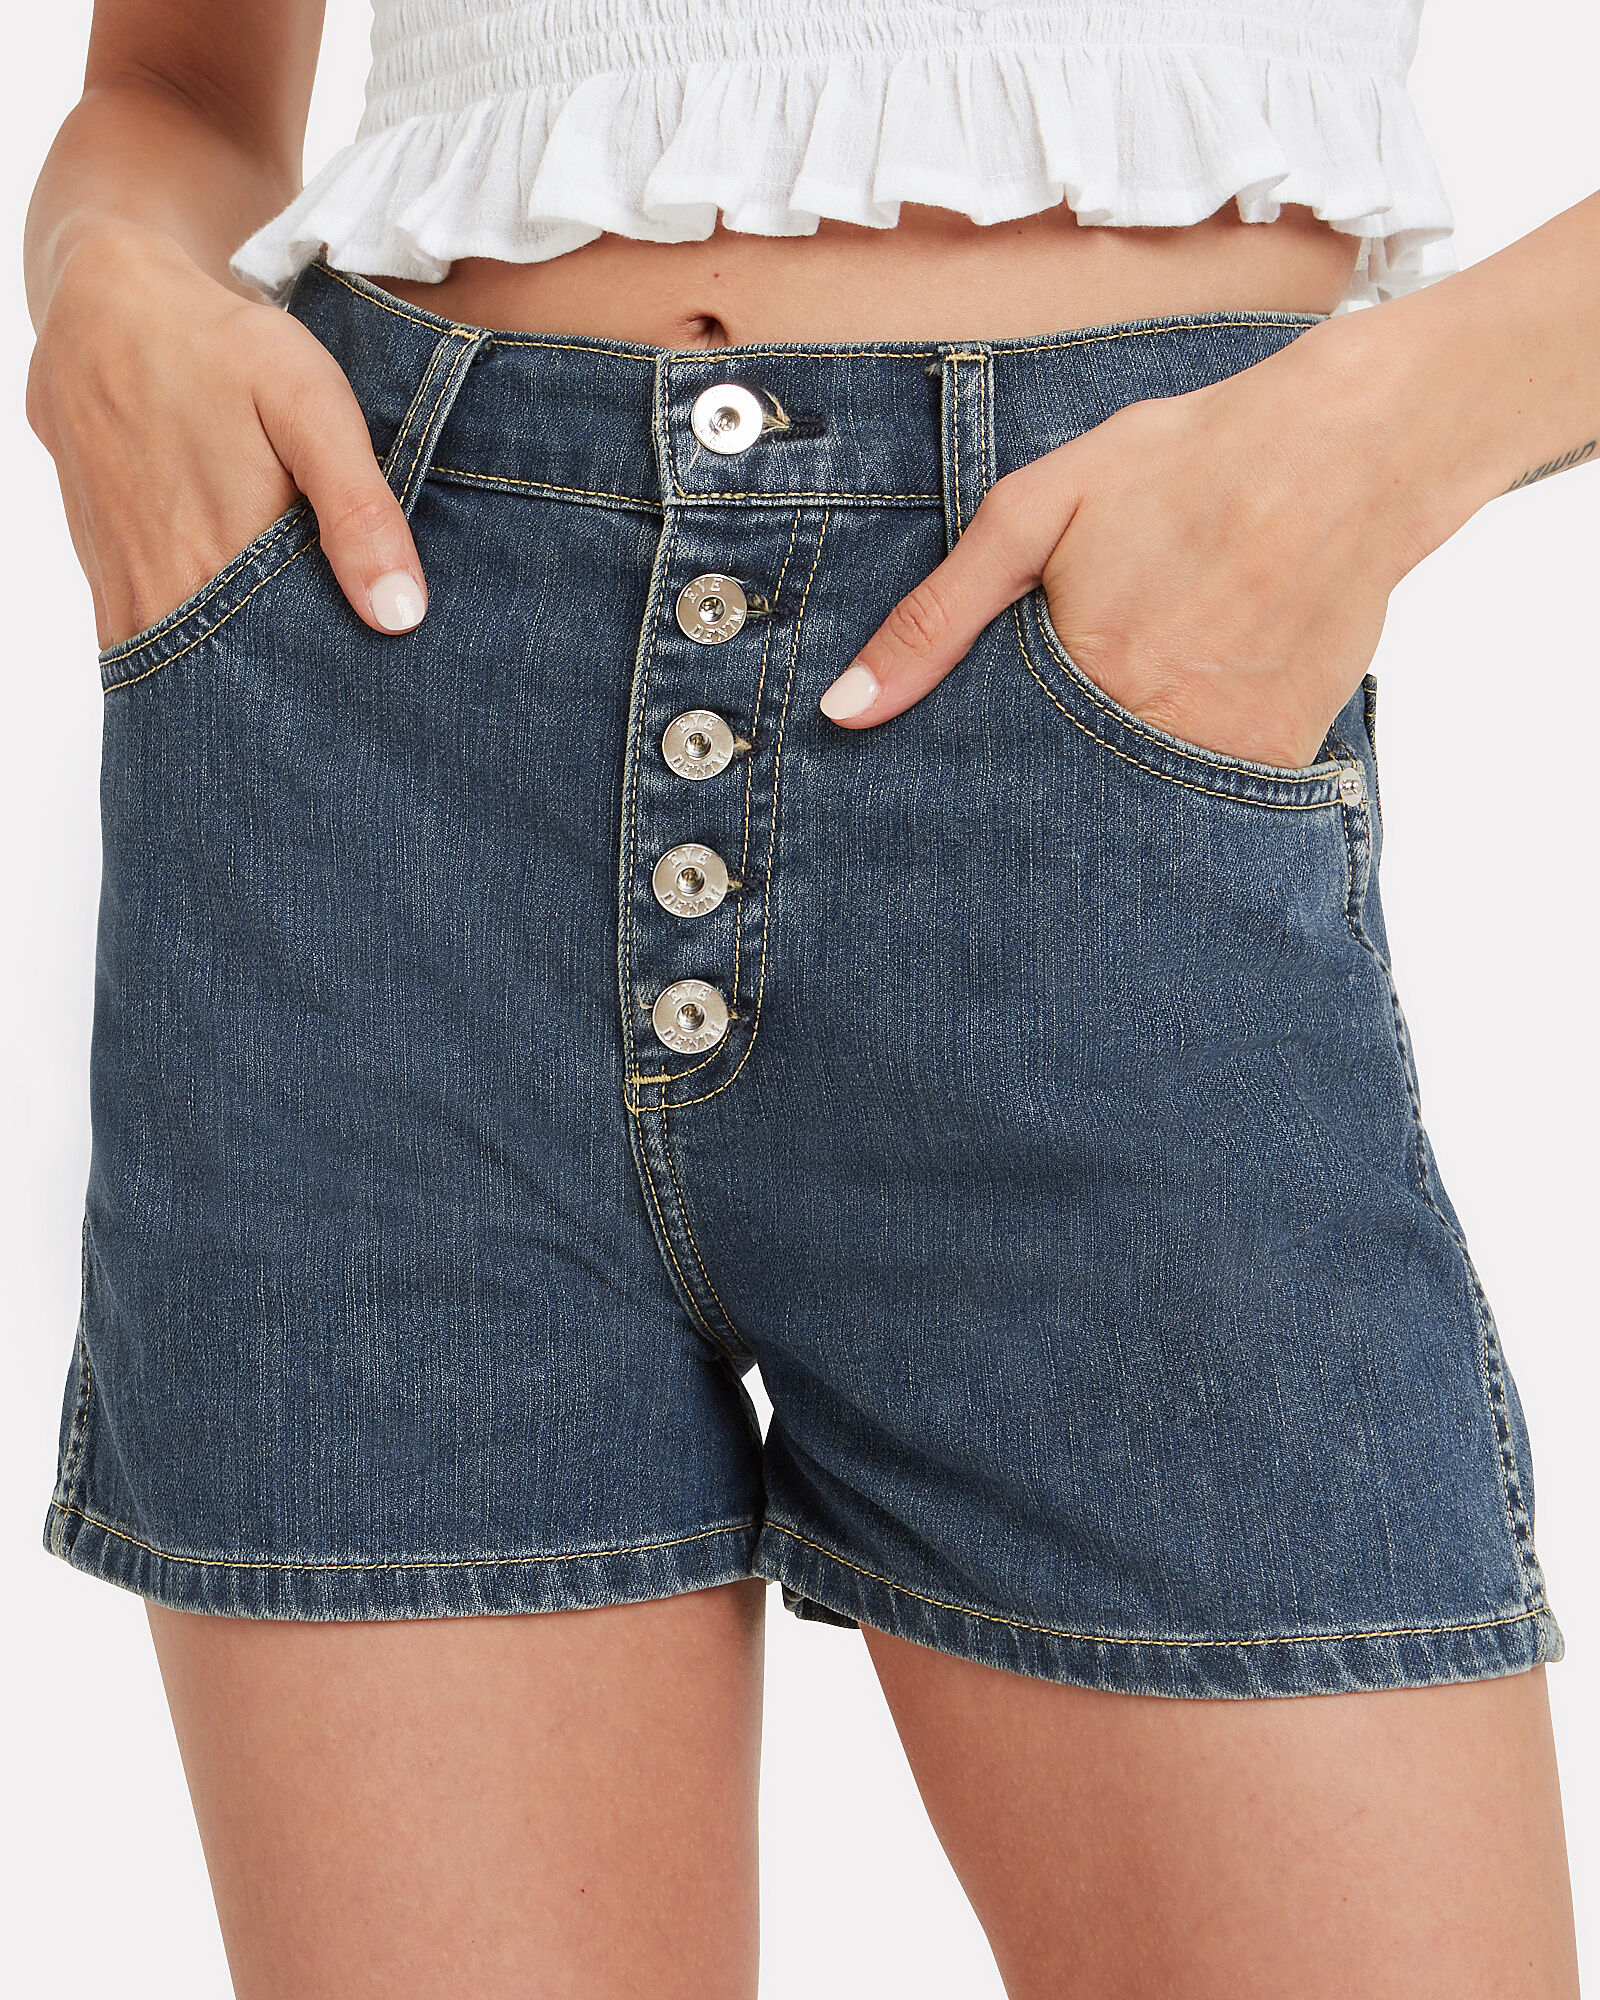 Leo Tribeca Denim Shorts, MEDIUM WASH DENIM, hi-res